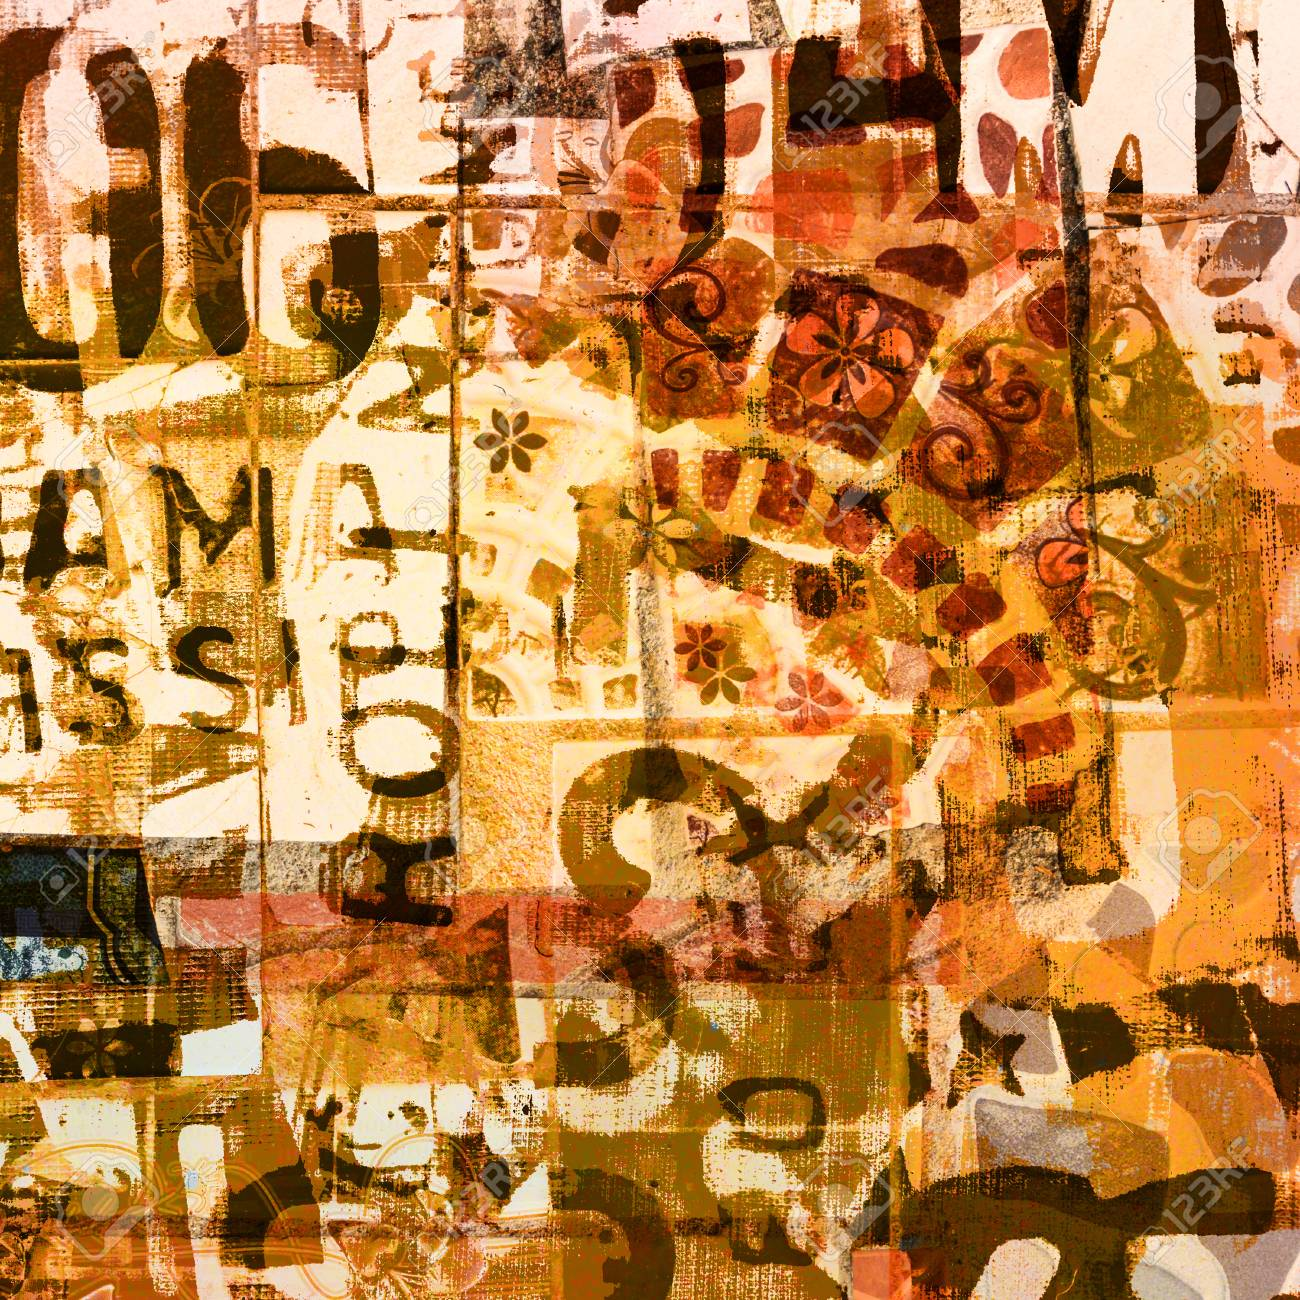 Abstract Art On The Wall, Mixed Media With Painting And Concrete ...